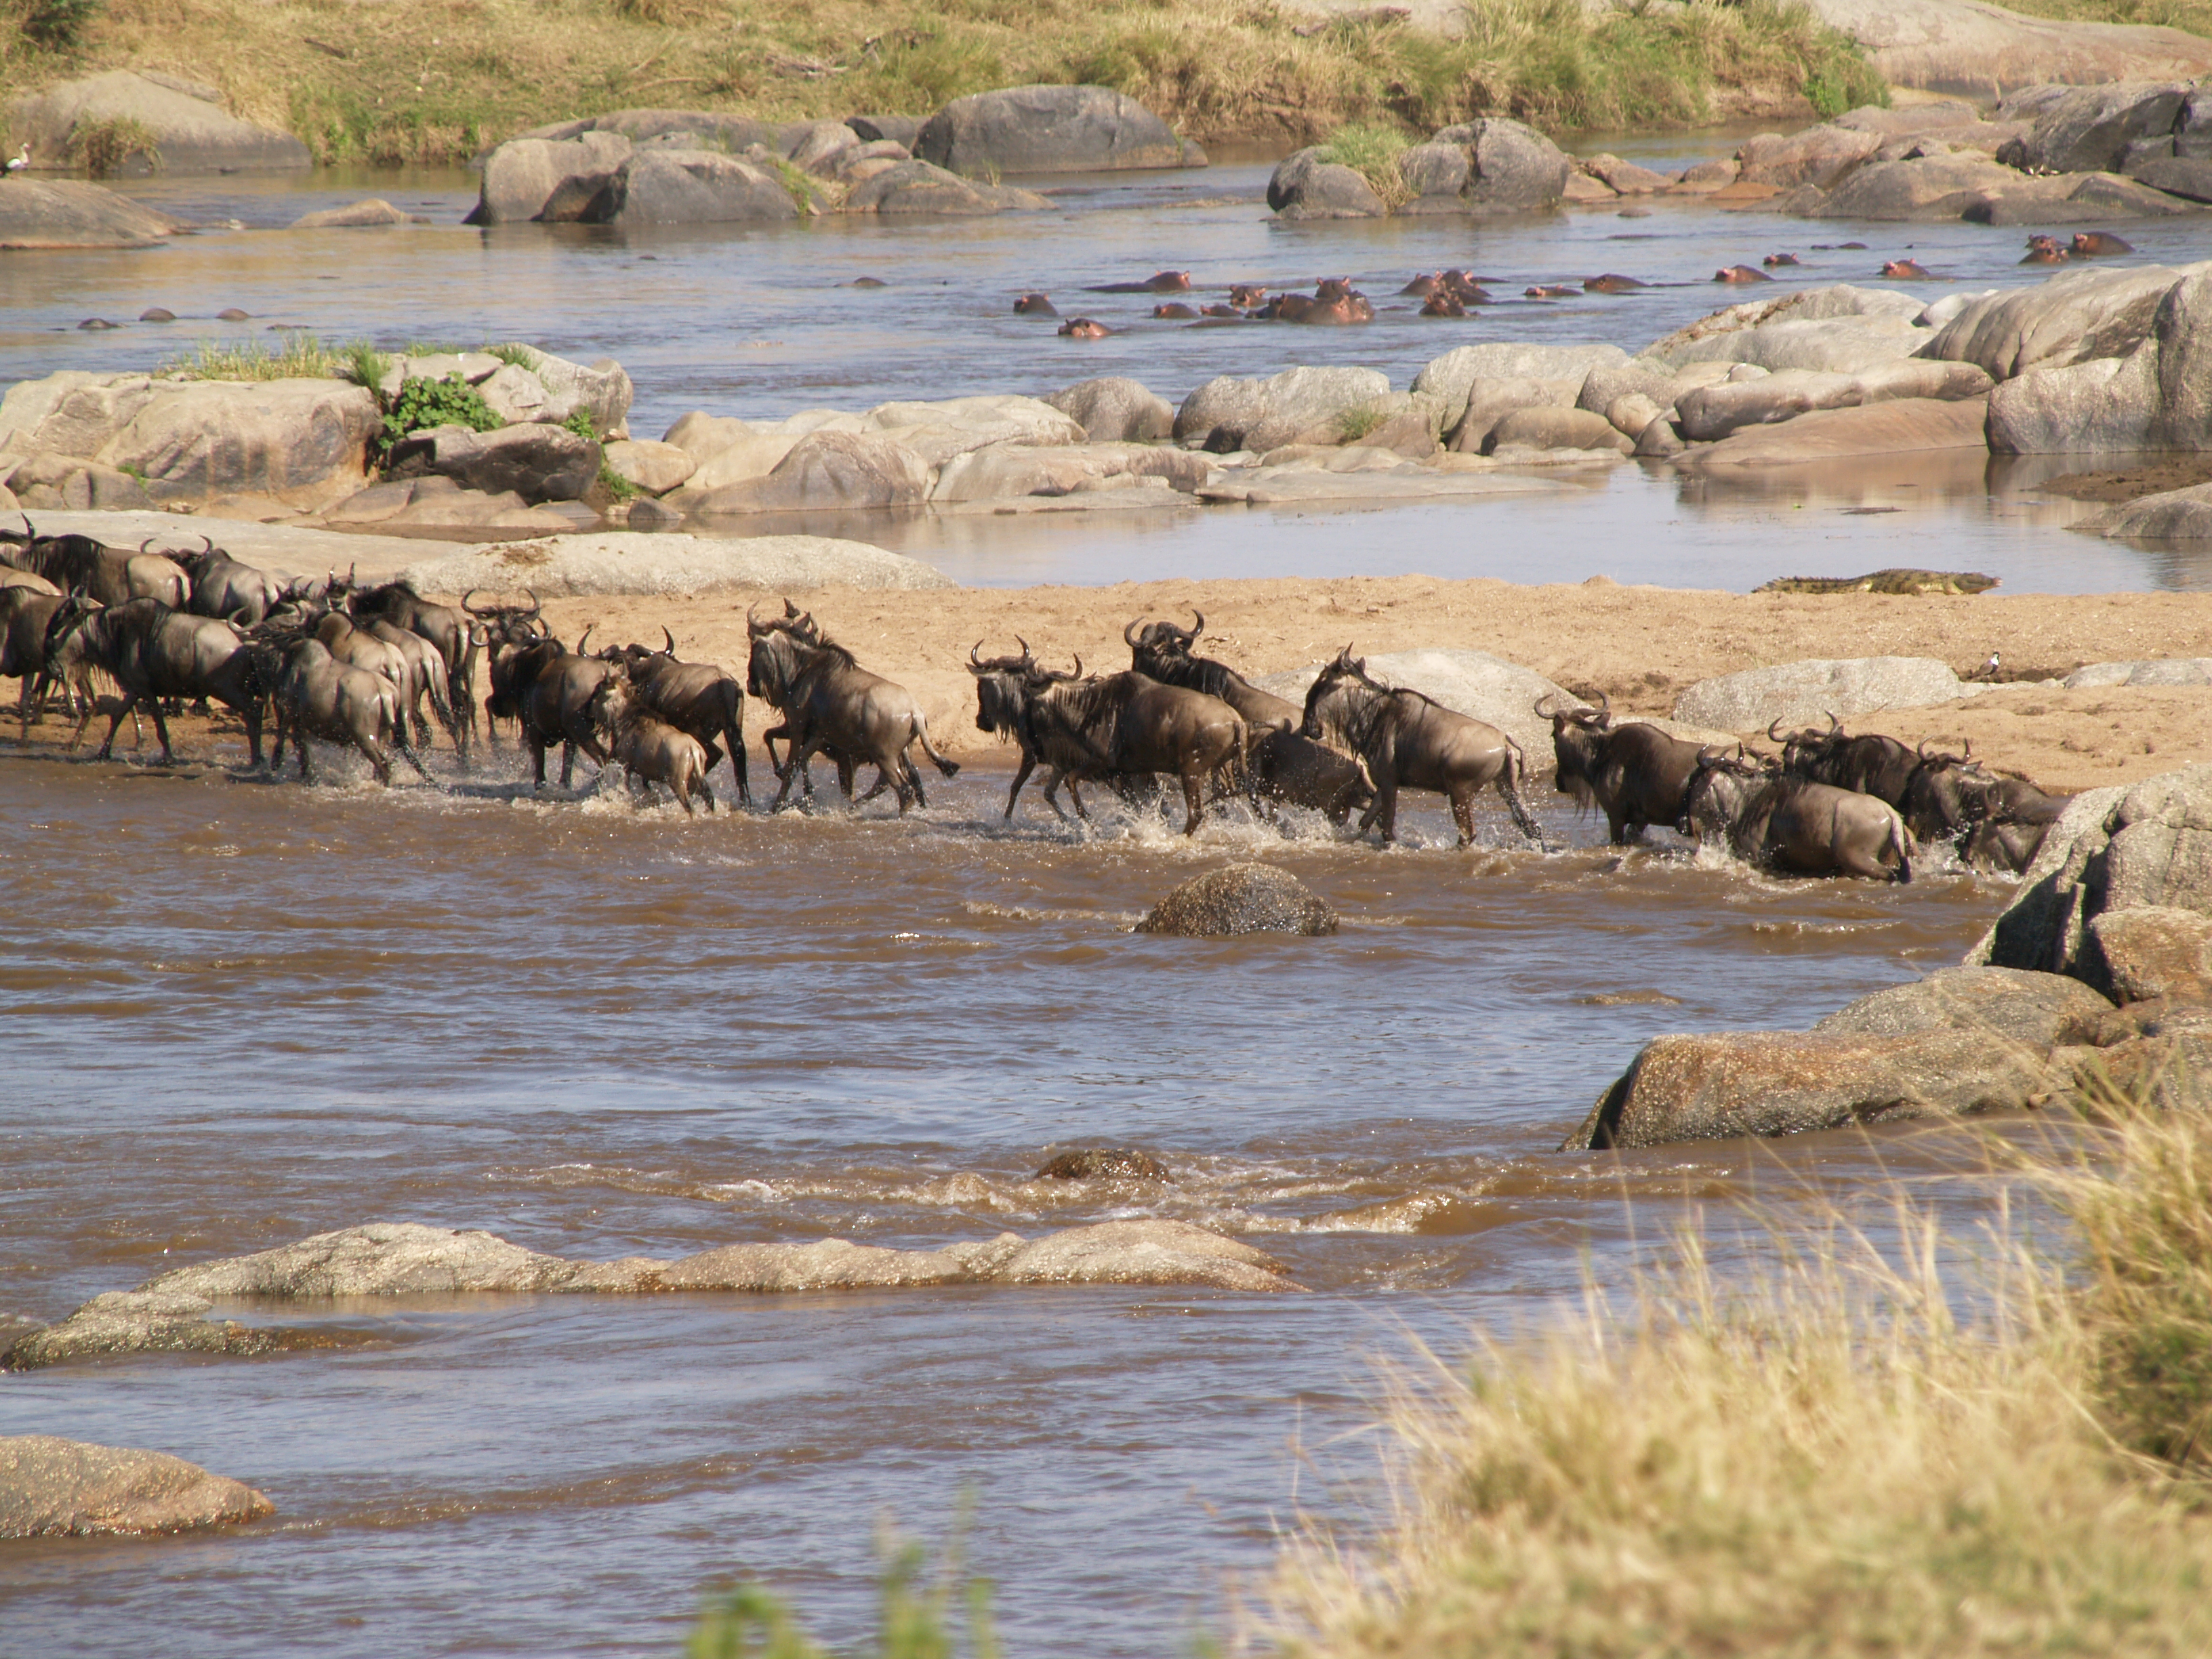 next three shots is a progression of wildebeest crossing the Mara River